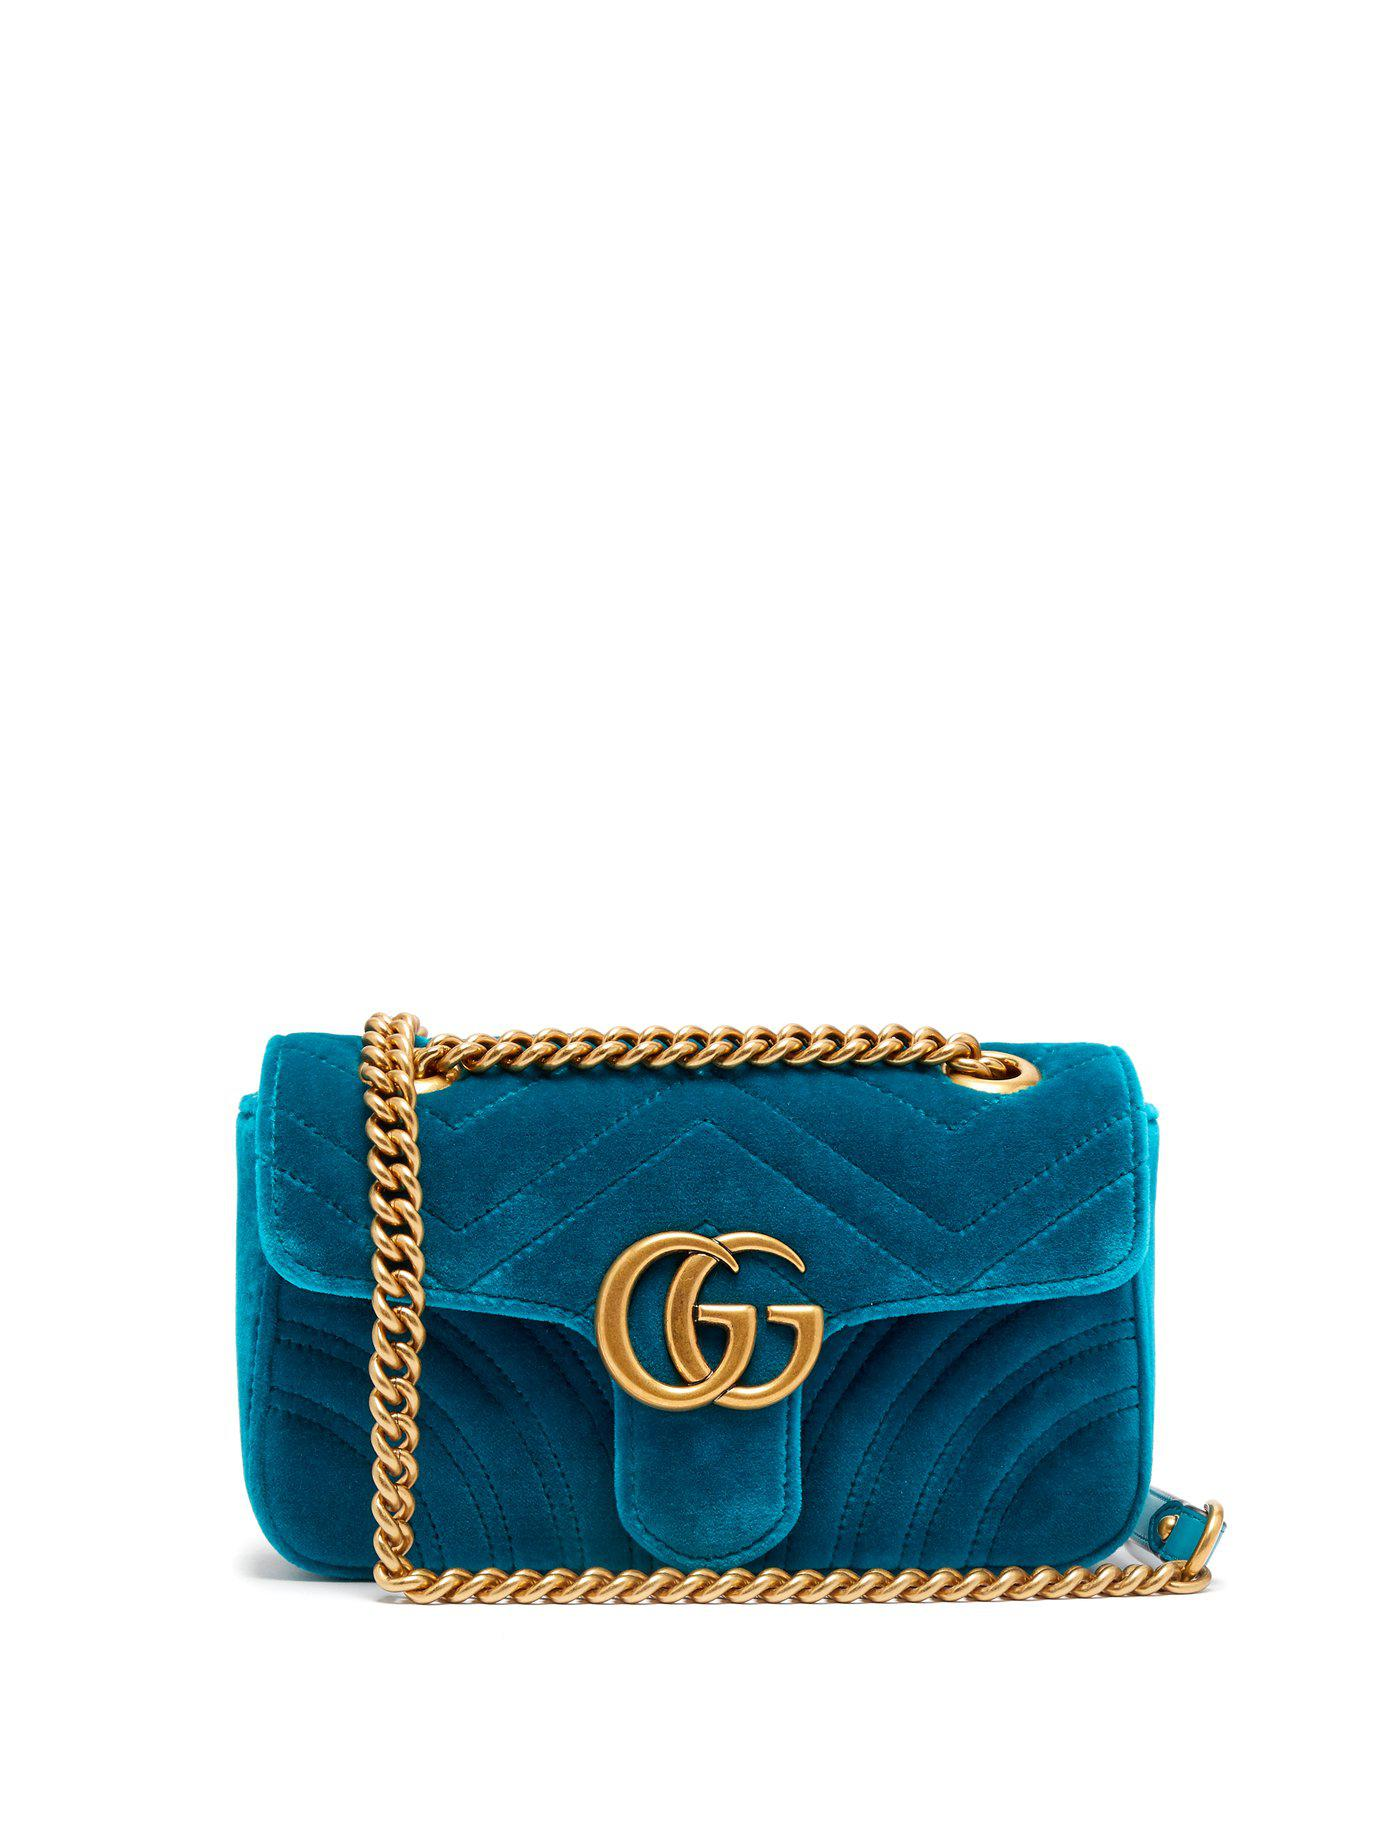 6fe7c389269a Lyst - Gucci Gg Marmont Mini Quilted Velvet Cross Body Bag in Green